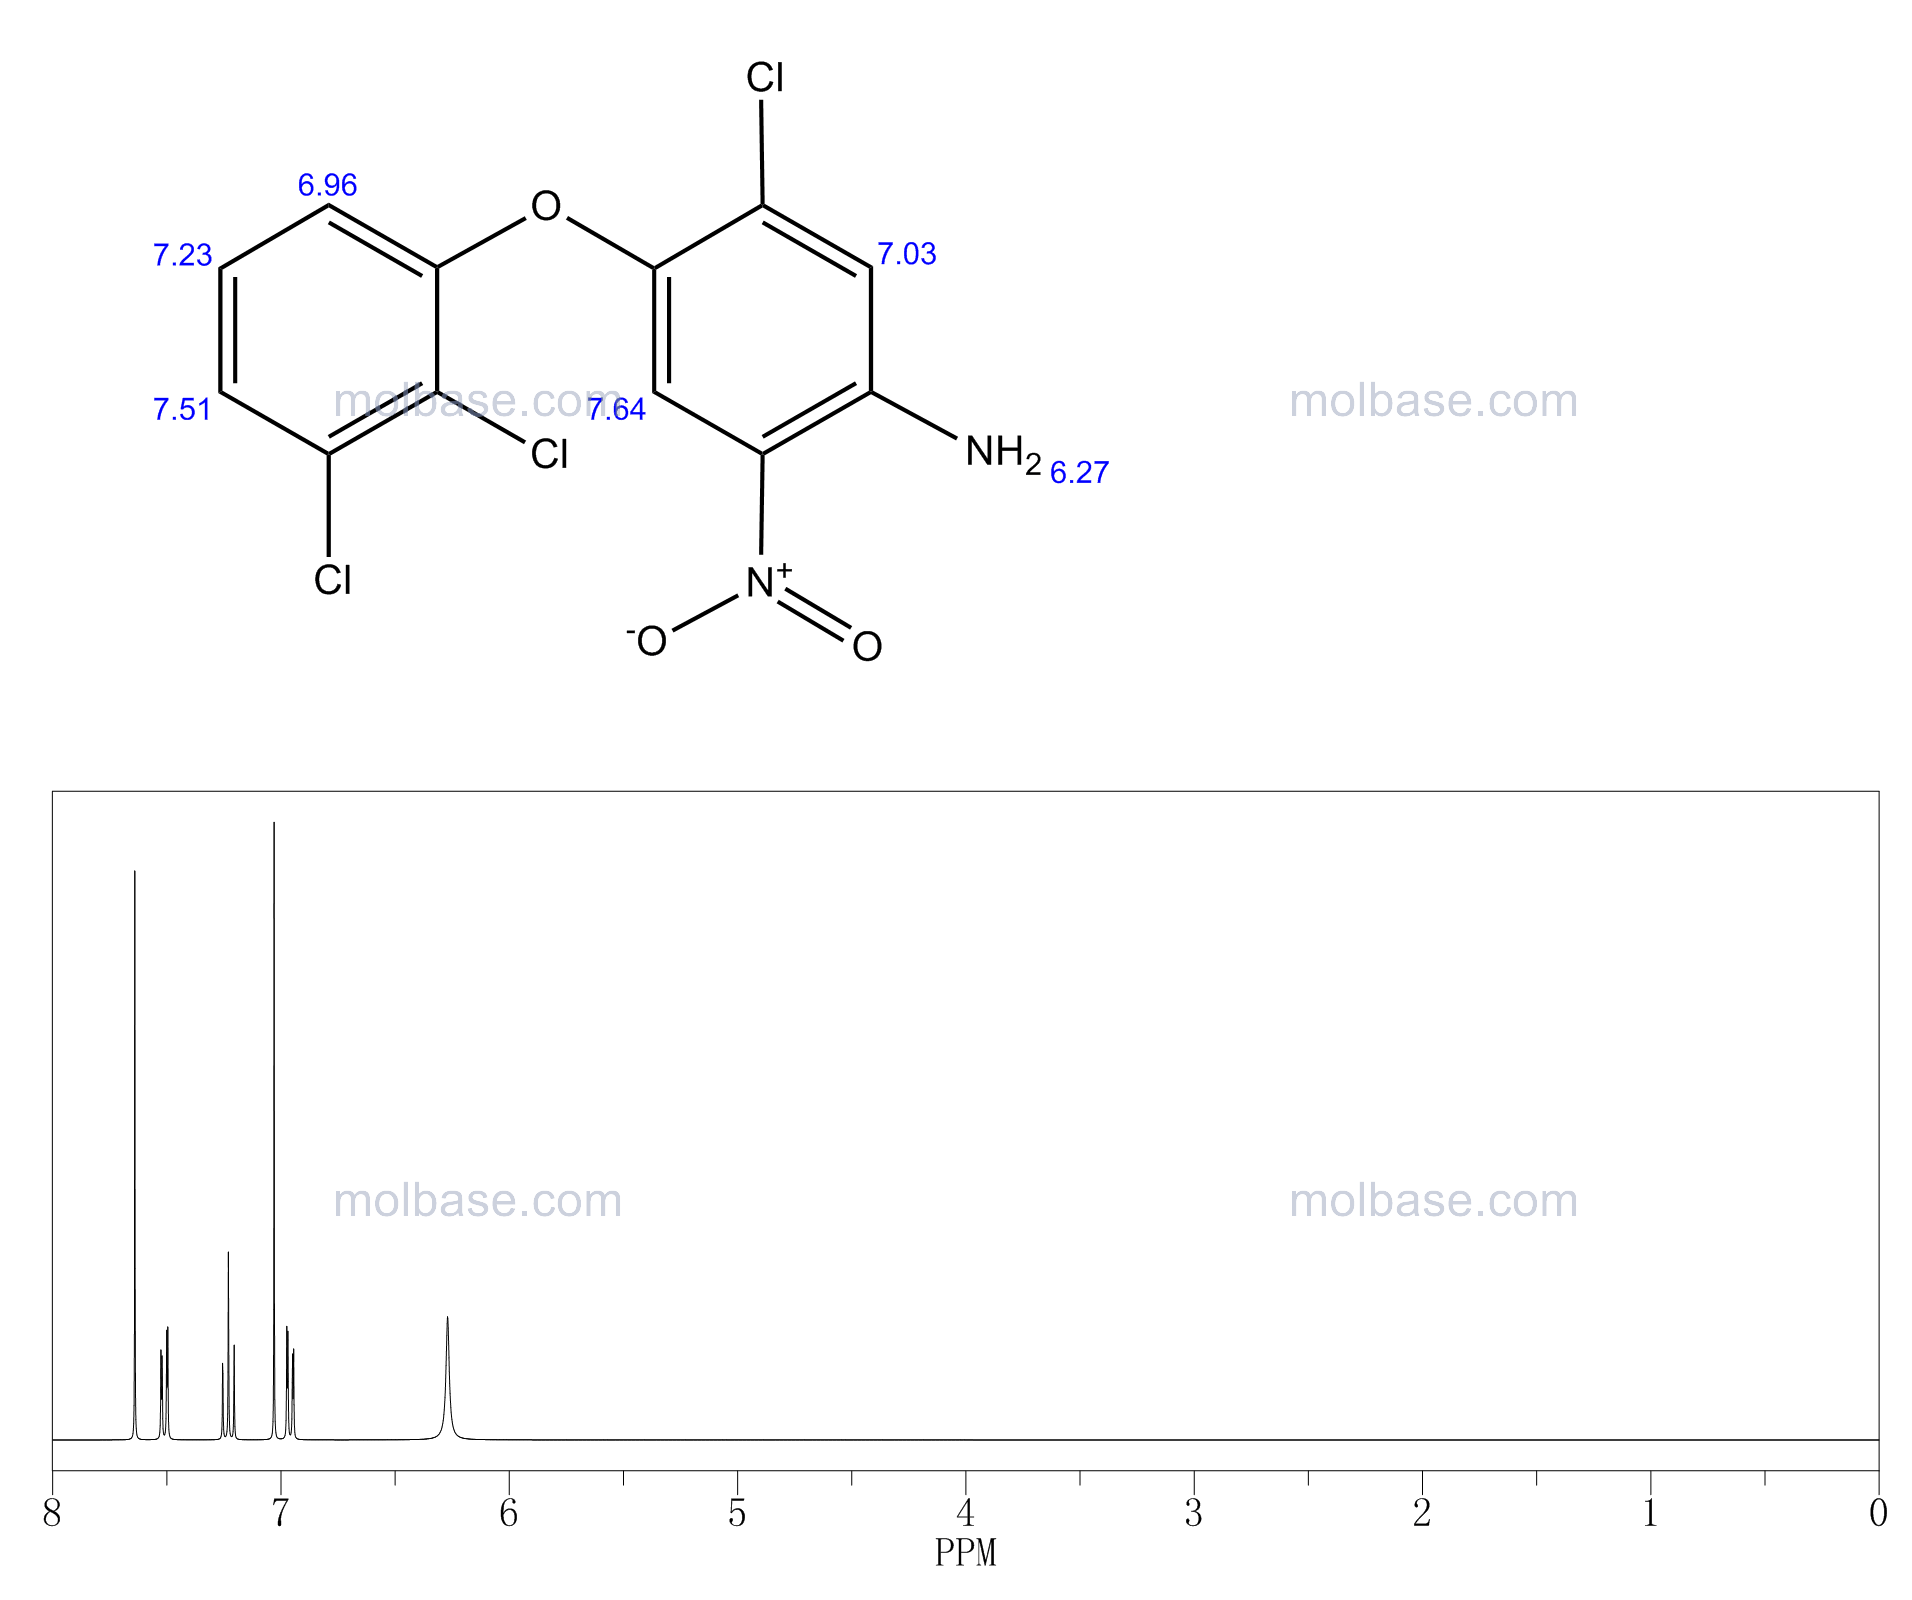 4-Chloro-5-(2,3-dichlorophenoxy)-2-nitroaniline NMR spectra analysis, Chemical CAS NO. 118353-04-1 NMR spectral analysis, 4-Chloro-5-(2,3-dichlorophenoxy)-2-nitroaniline C-NMR spectrum